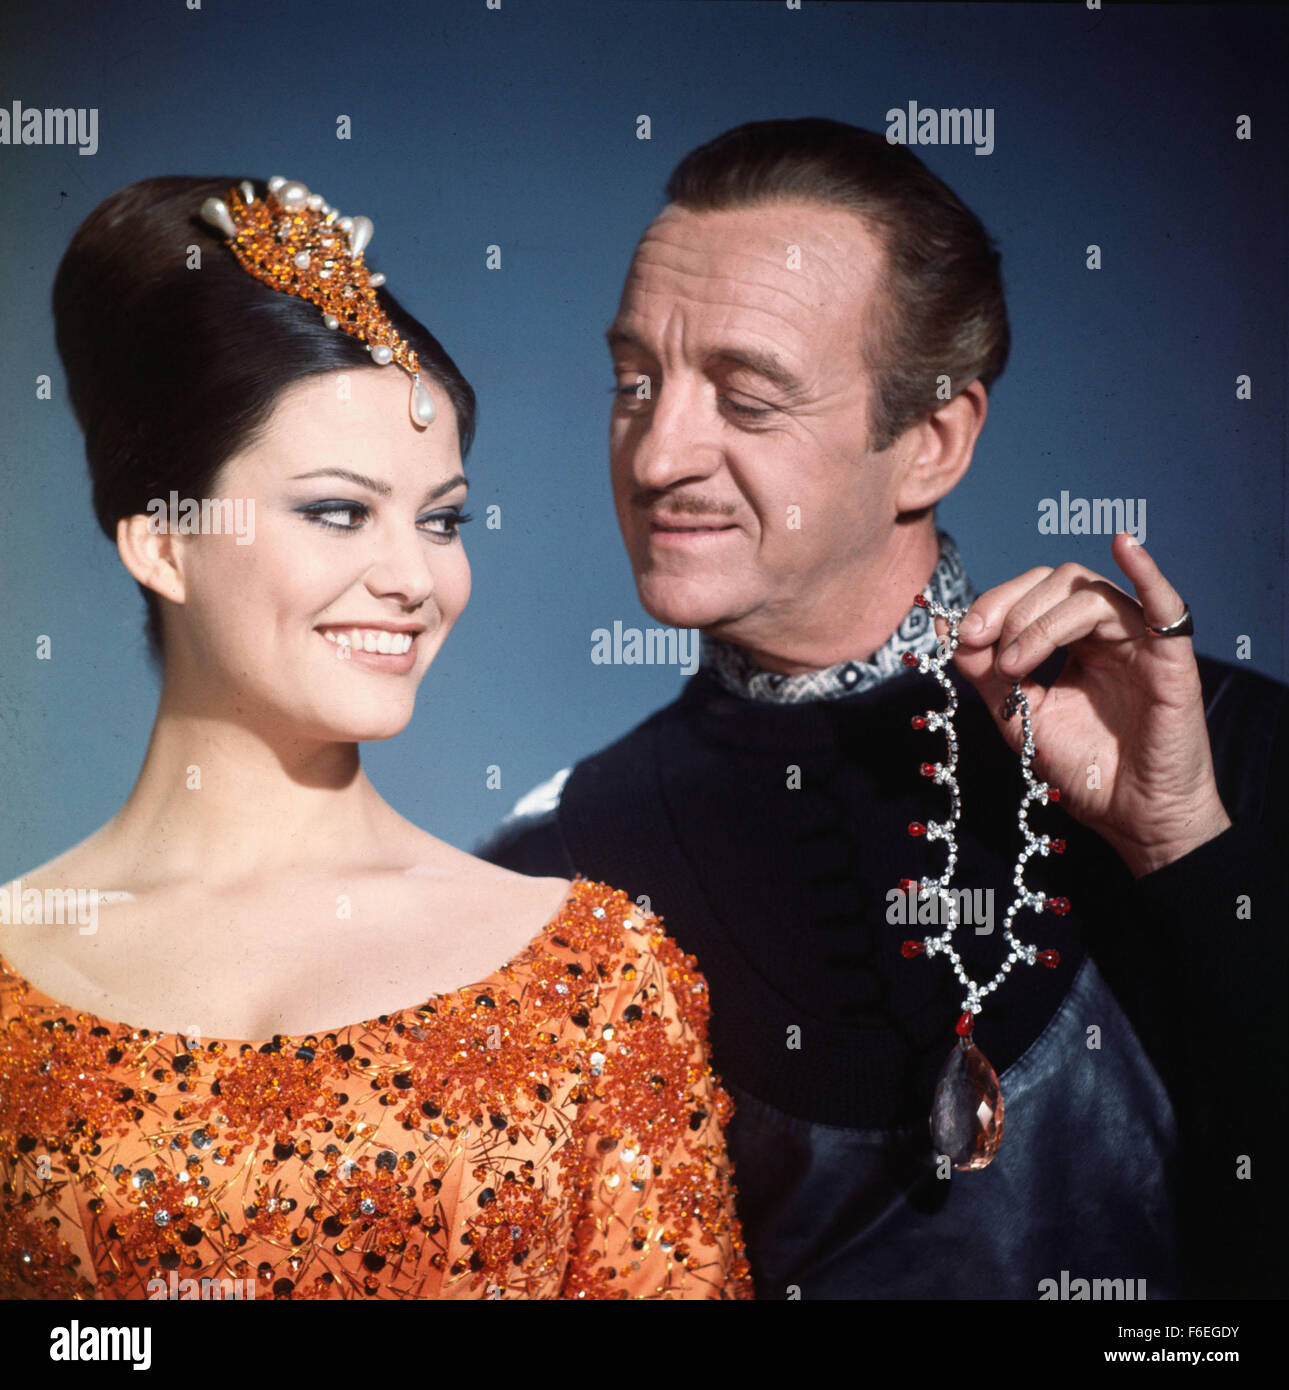 61e231cea1f6 ... Image from director Blake Edwards' crime comedy 'The Pink Panther'  starring CLAUDIA CARDINALE as Princess Dala and DAVID NIVEN as Sir Charles  Lytton.